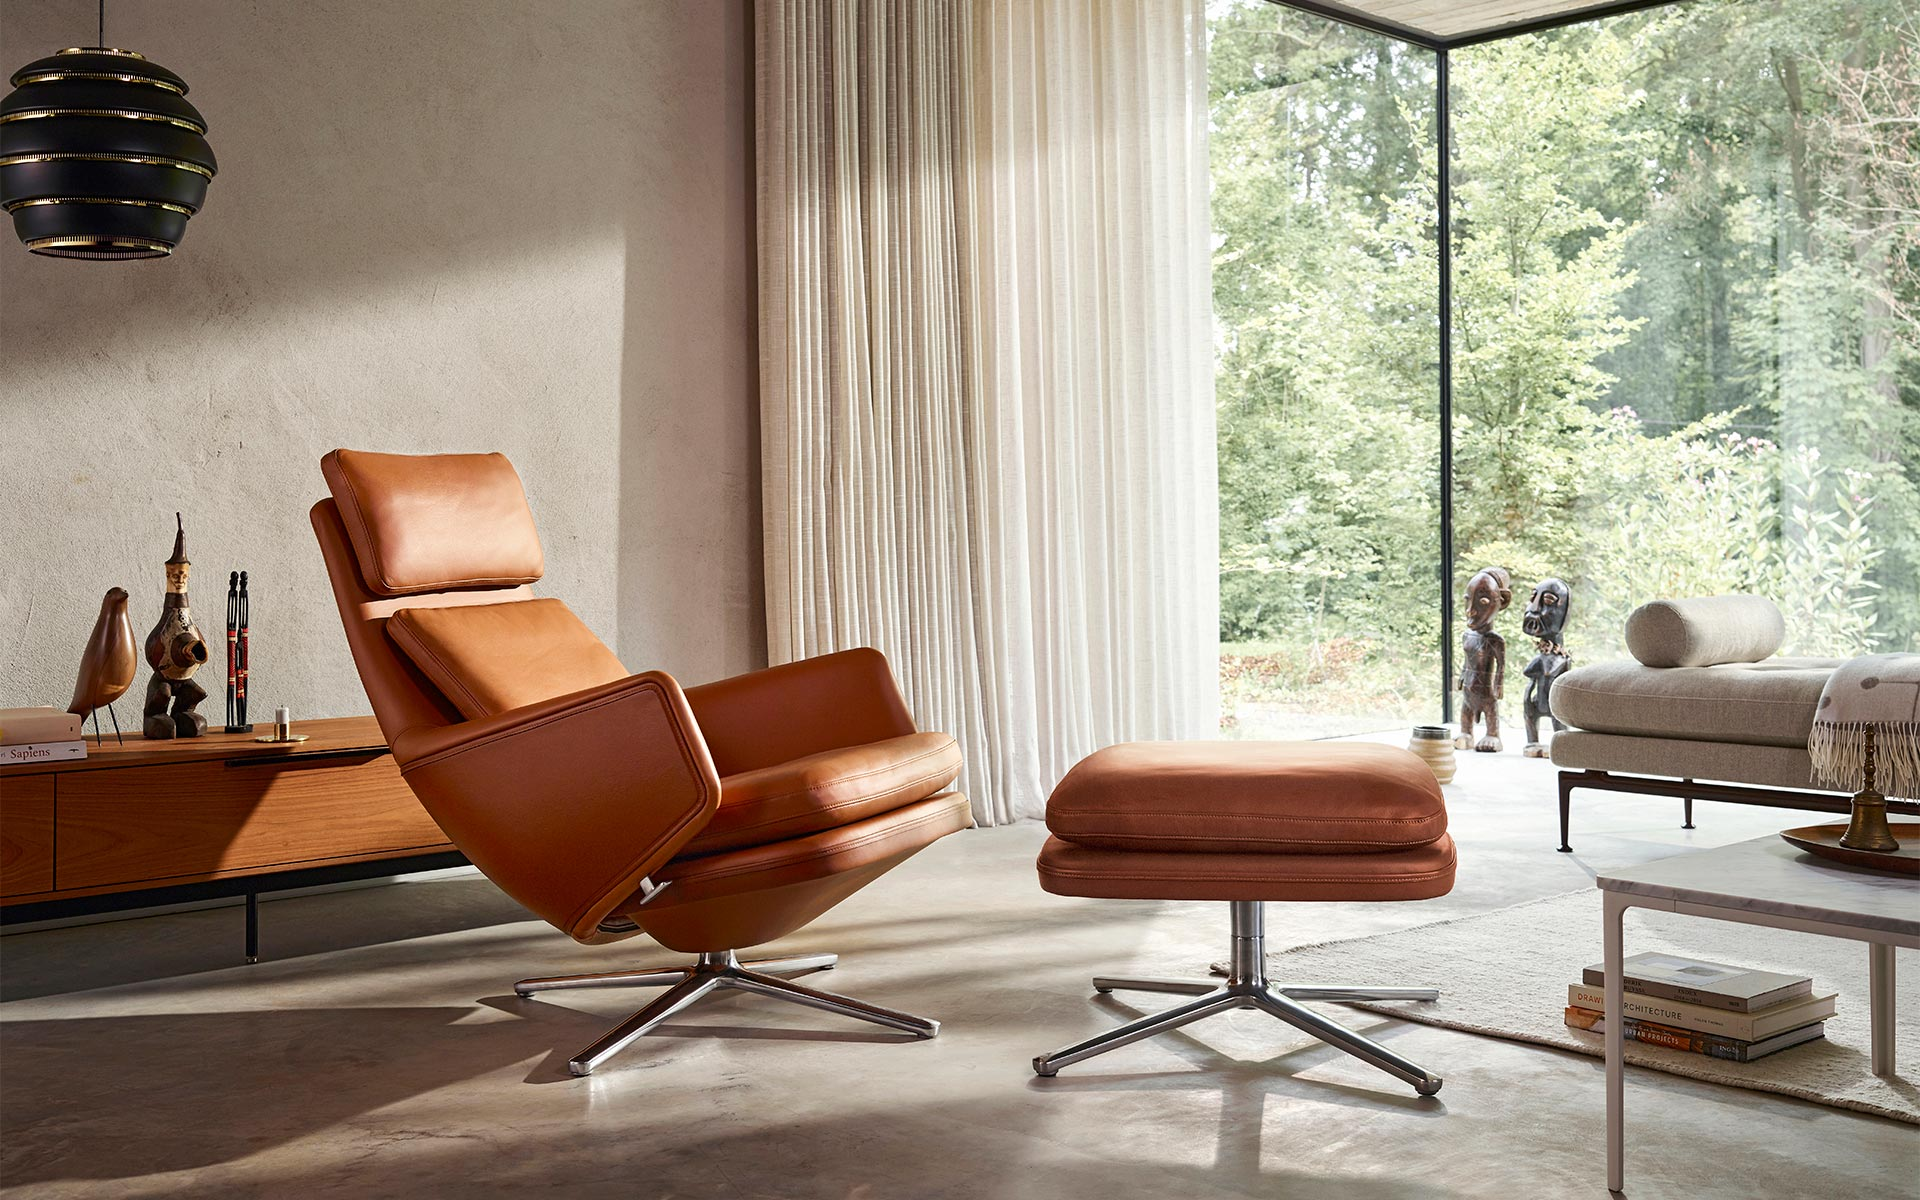 Vitra Grand Relax with Ottoman Suita Daybed Eames house Bird Wooden dolls Plate Table marmor